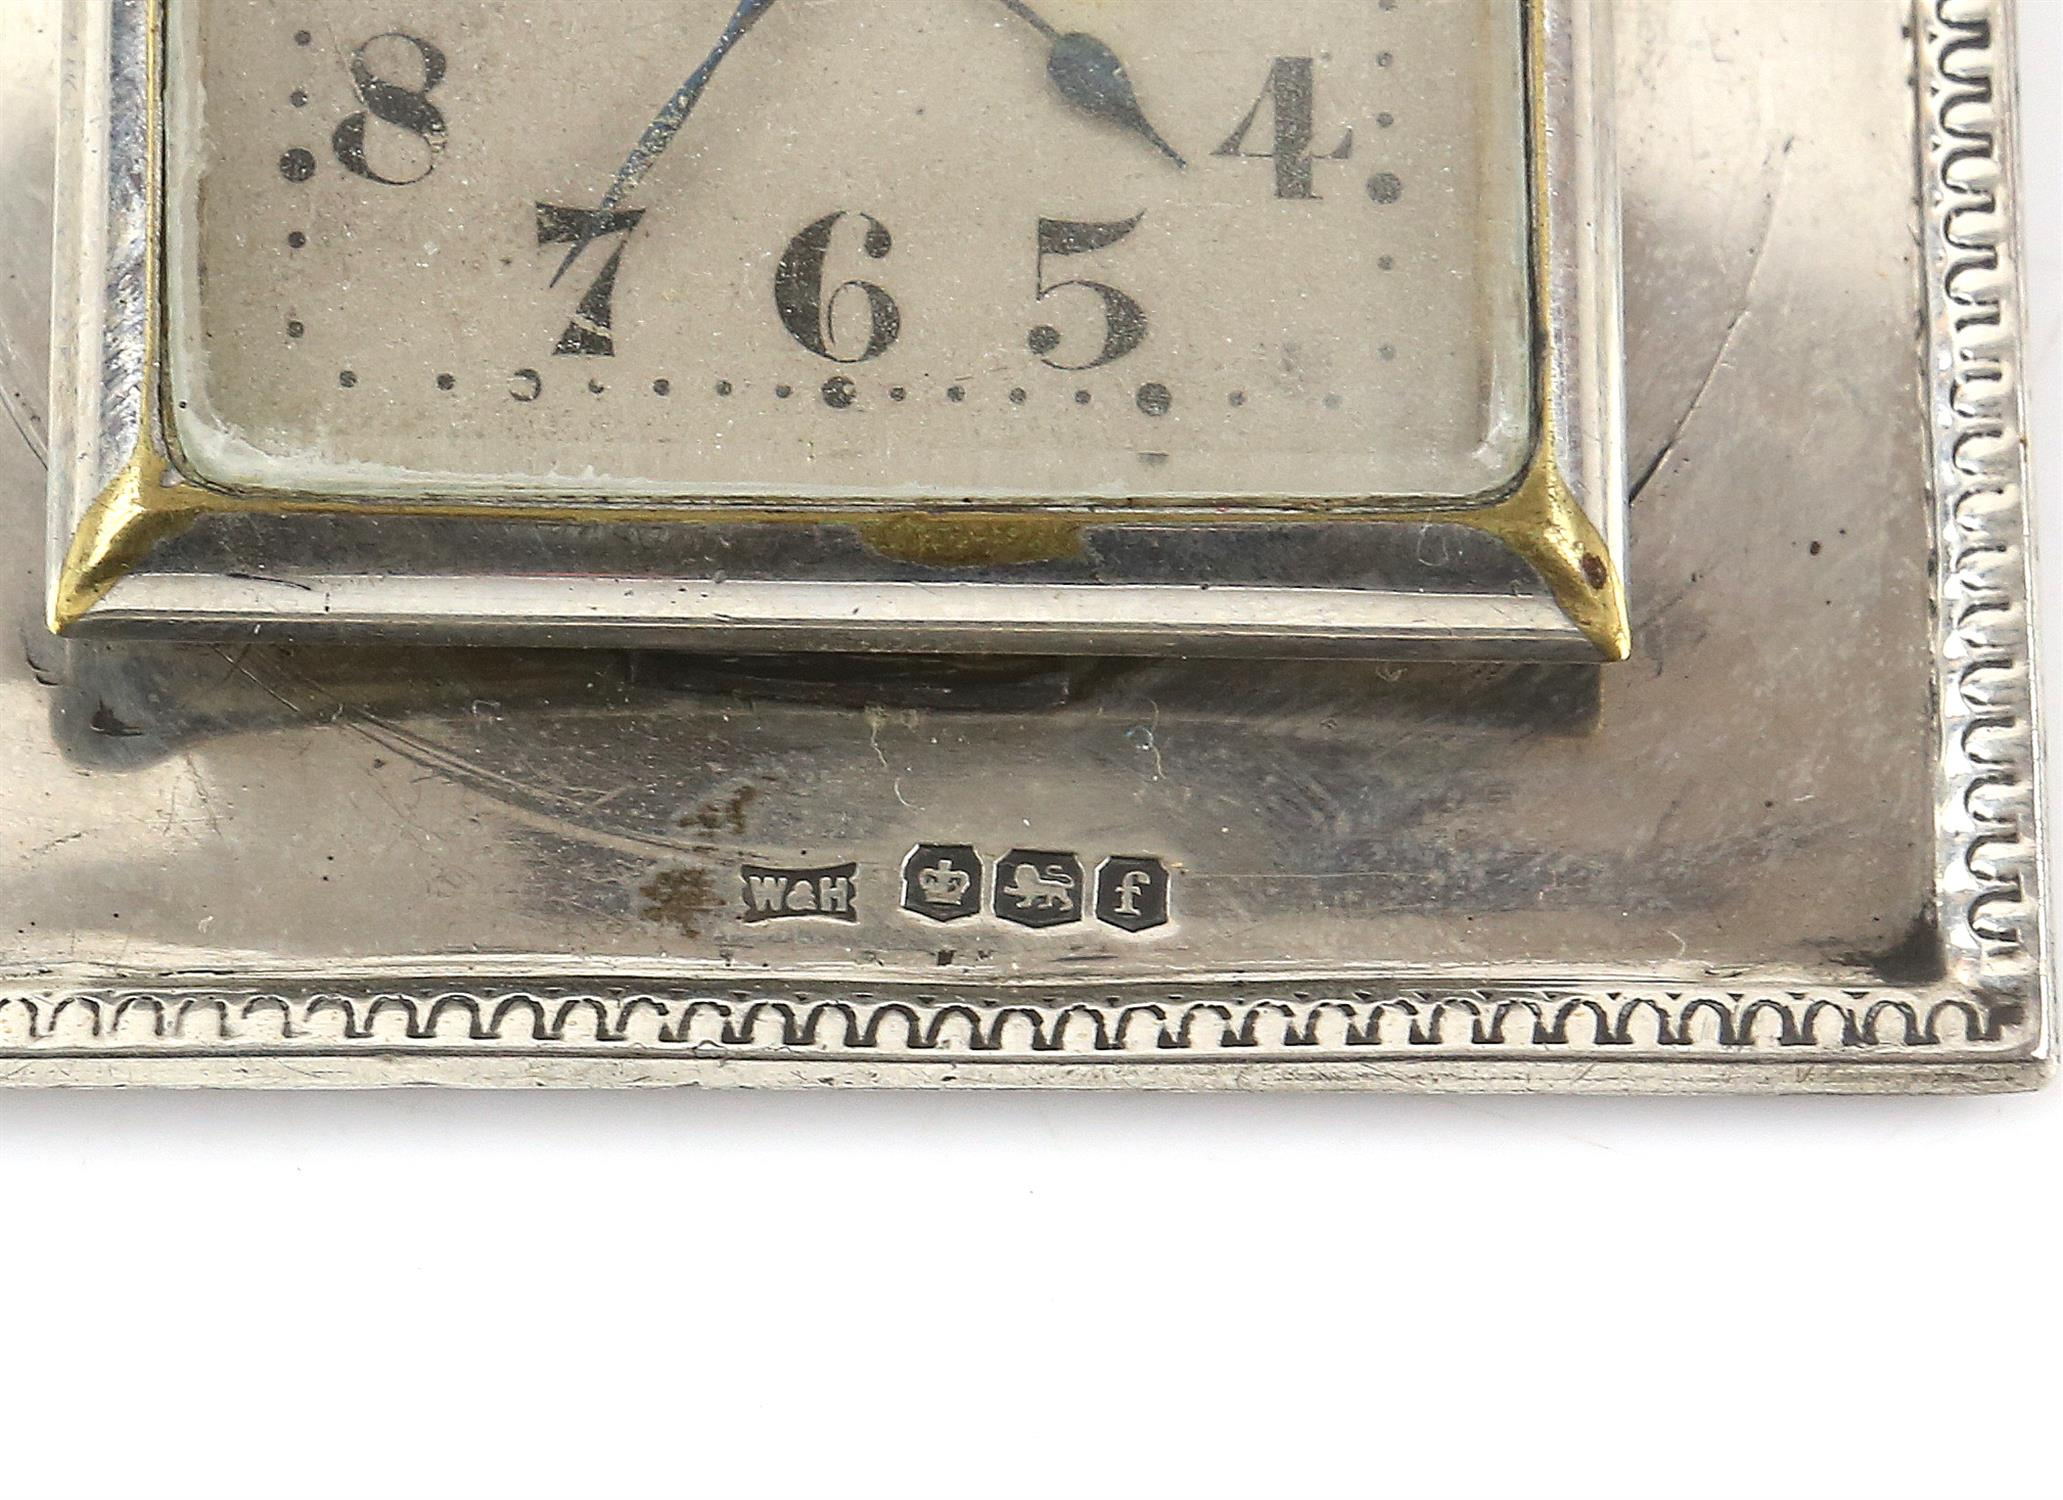 Walker and hall silver framed clock, an Indian silver white metal desk top card holder and a - Image 7 of 8